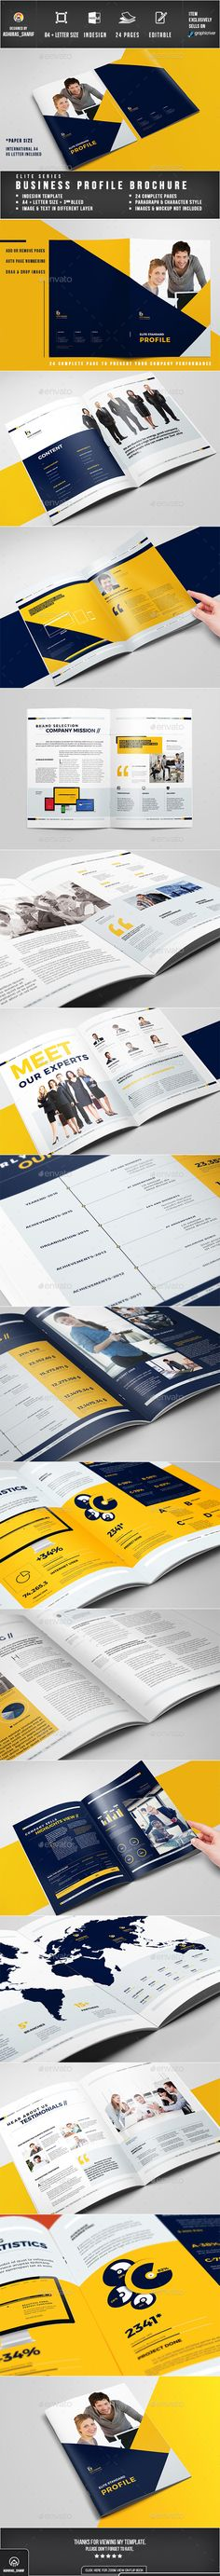 Company Profile Brochure Template InDesign INDD. Download here: http://graphicriver.net/item/company-profile/16046284?ref=ksioks